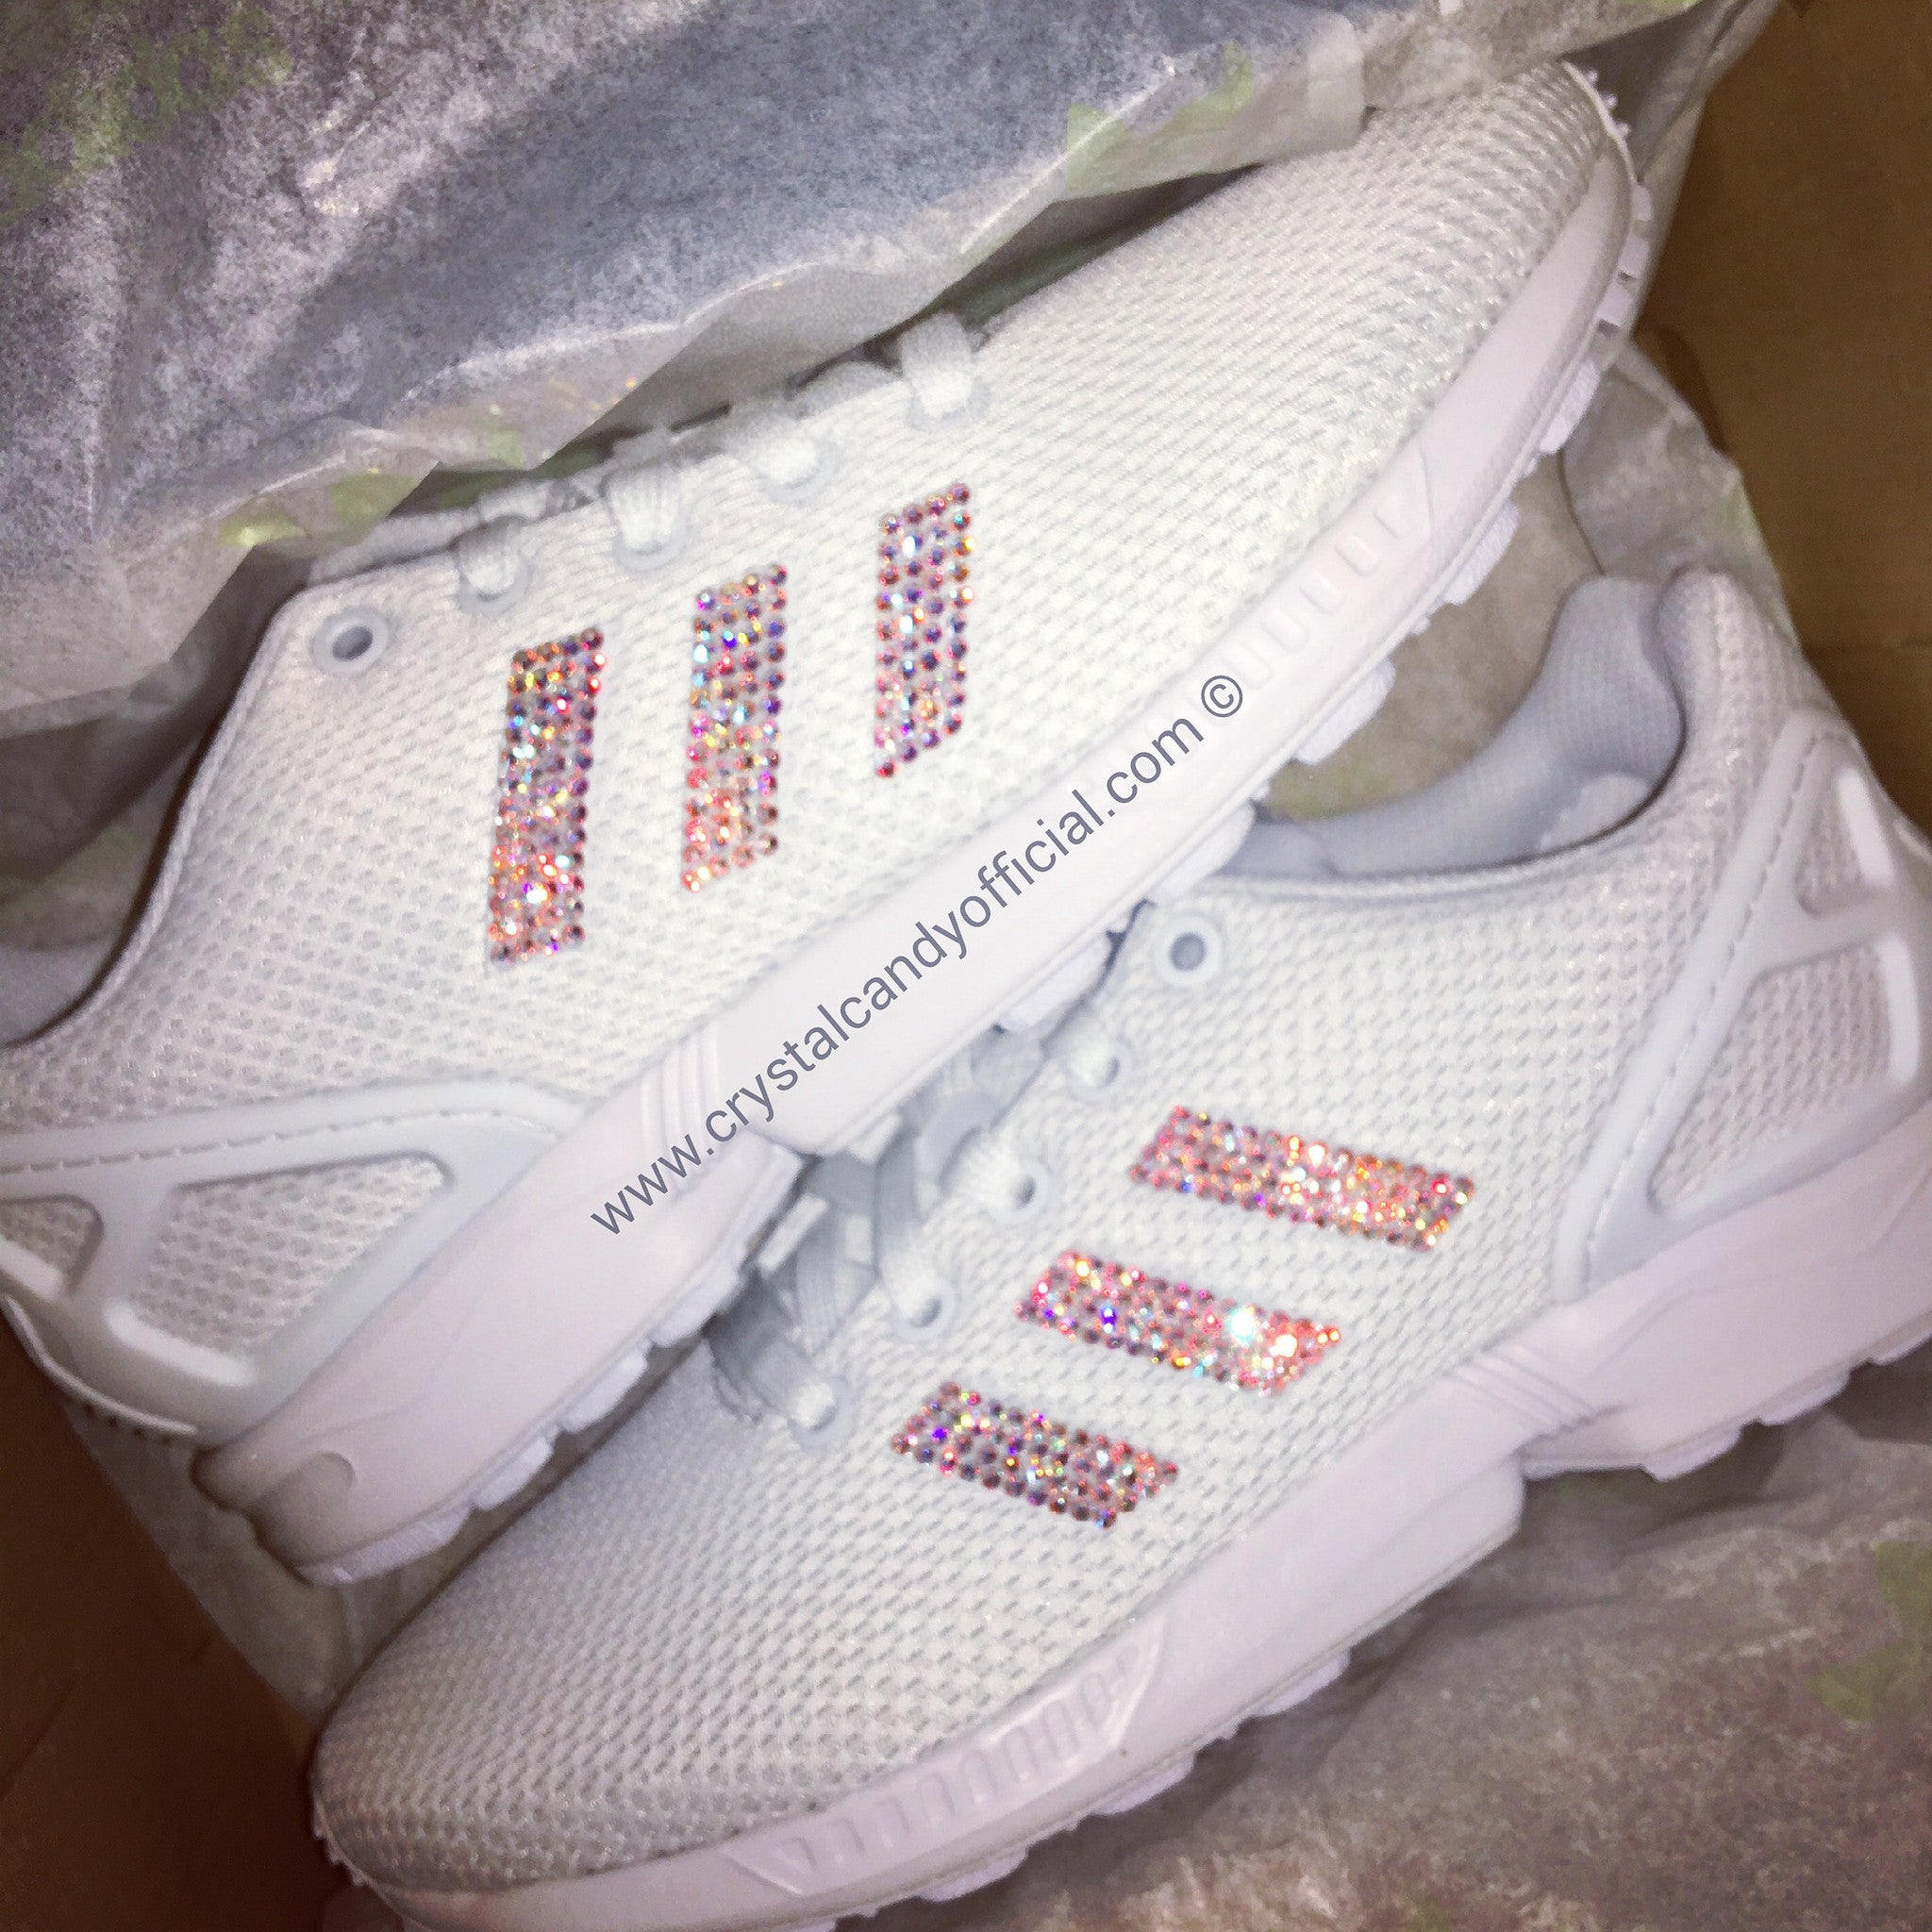 Crystal Adidas Flux in White - Crystal